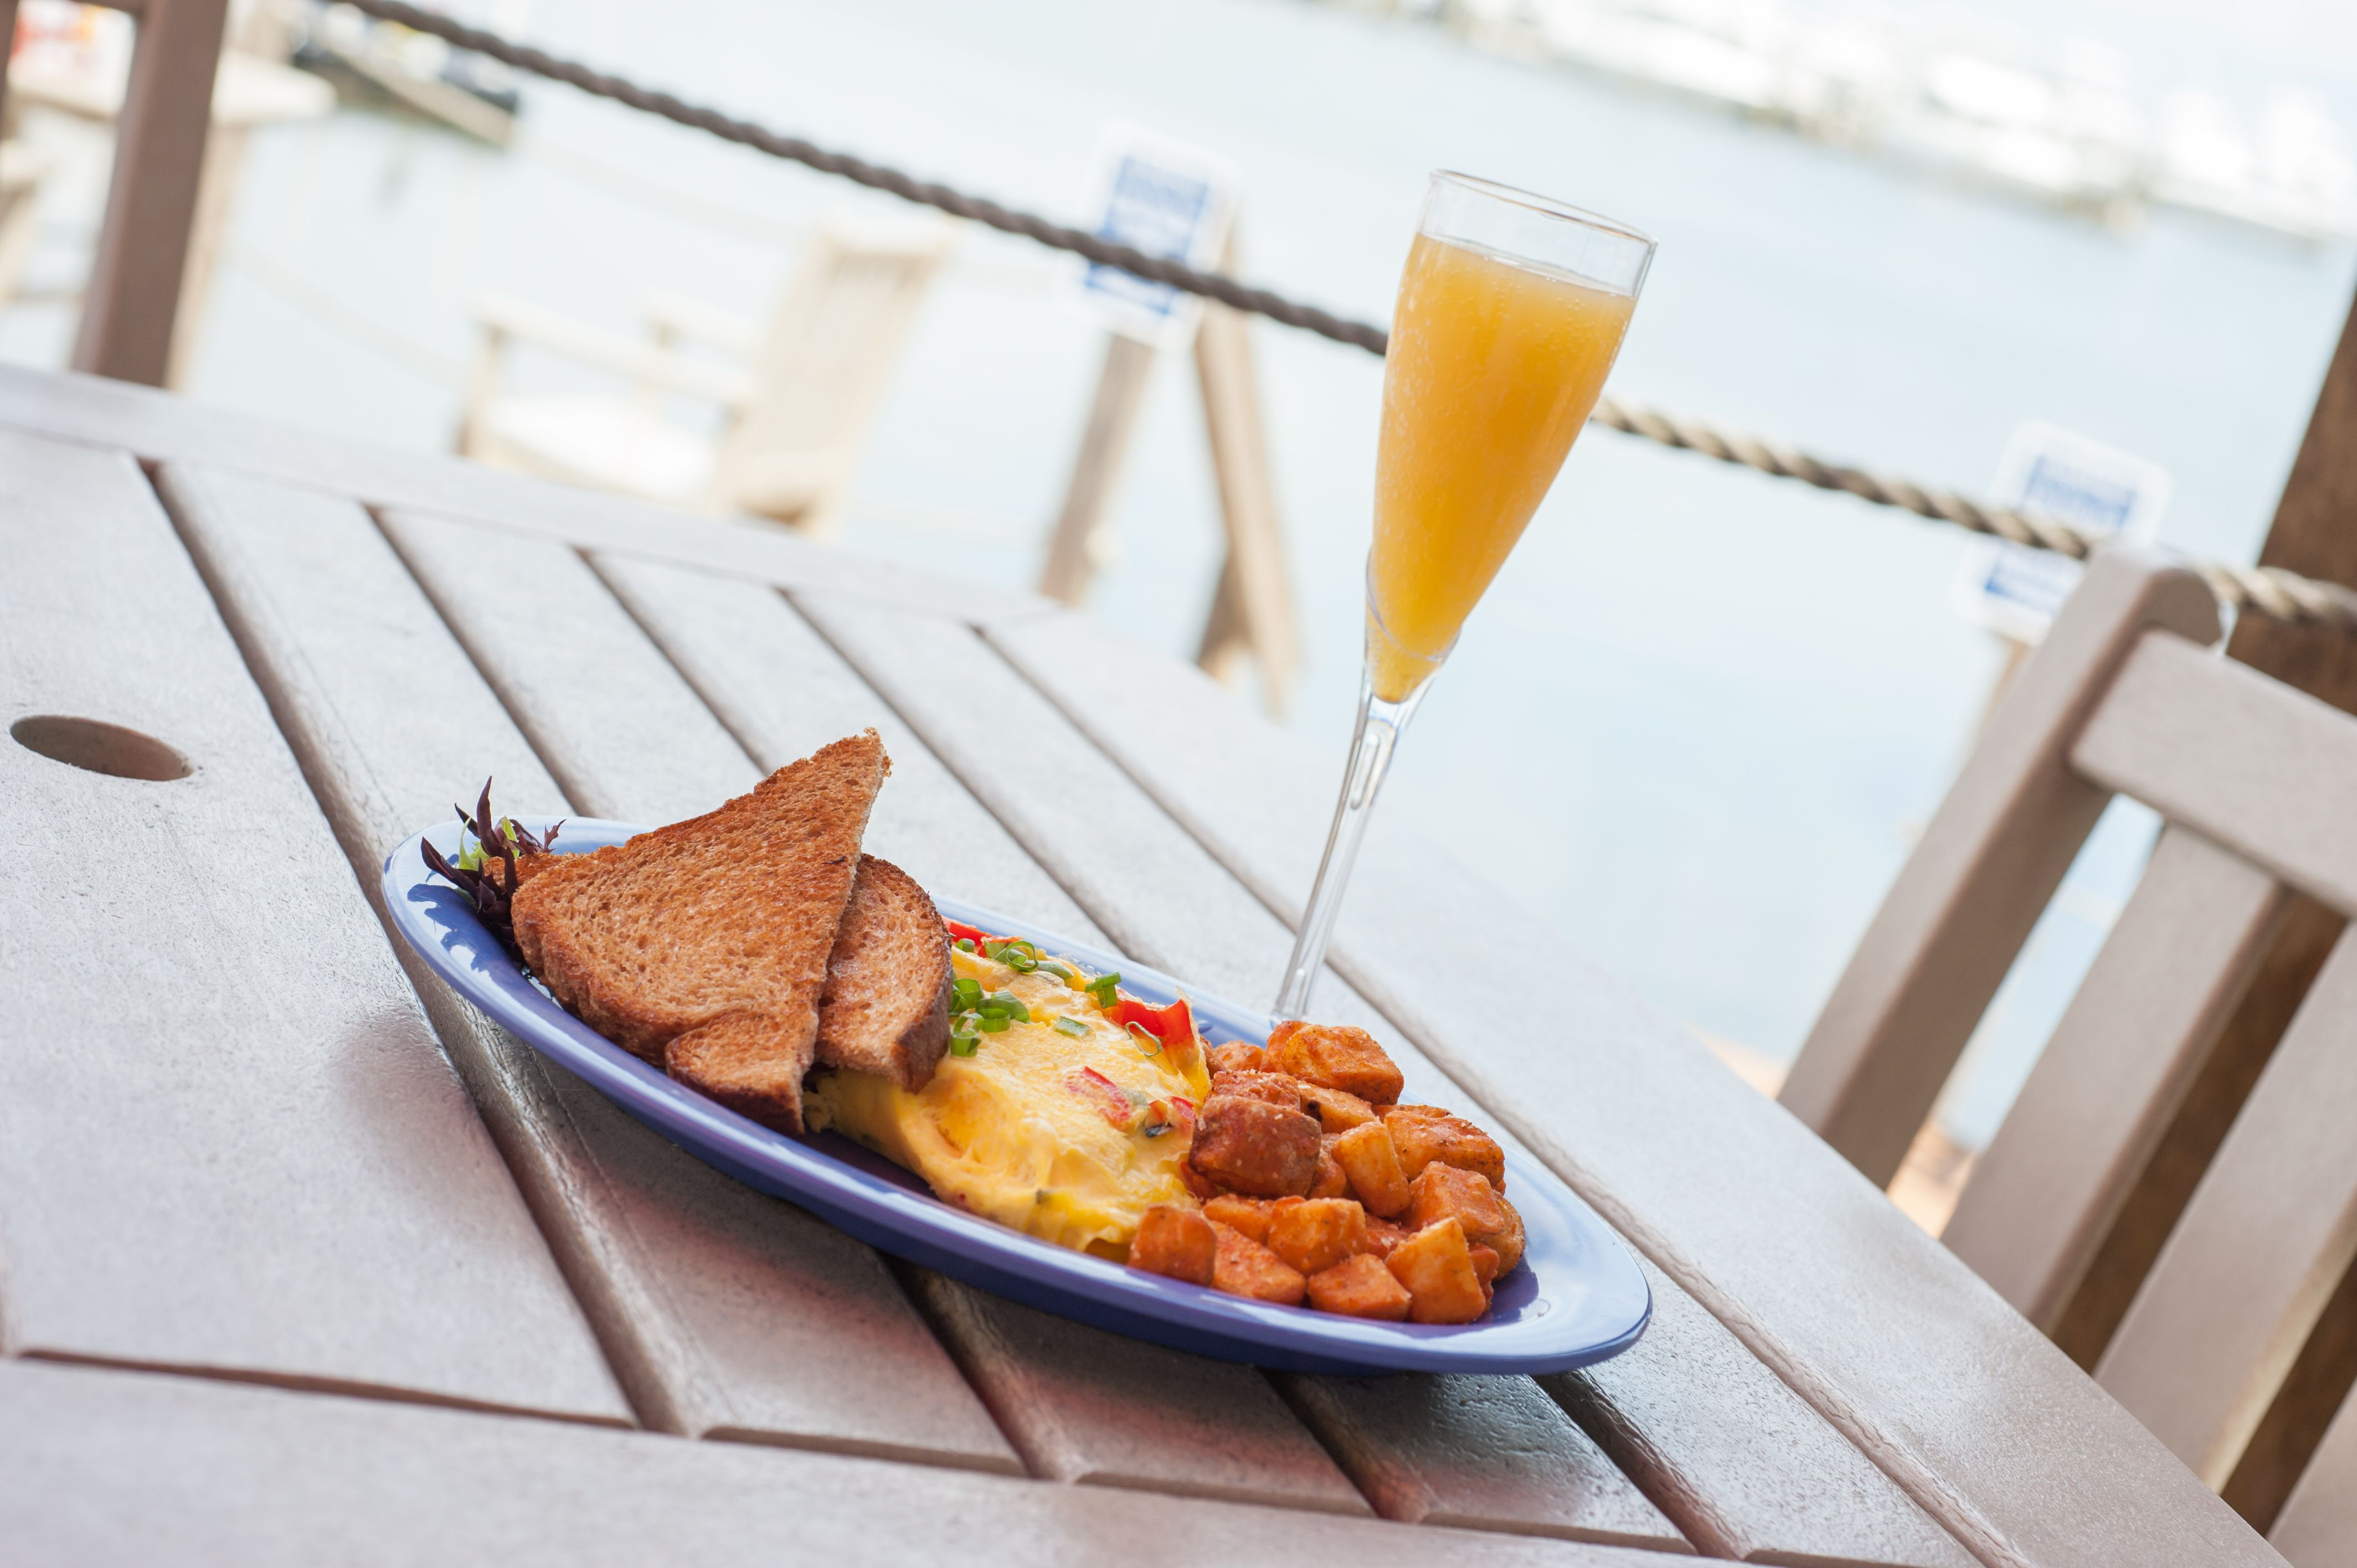 Visit Destin Florida Restaurants Bars And Pubs While At Sandestin Some Of The In Include Osaka Sushi Another Broken Egg Cafe